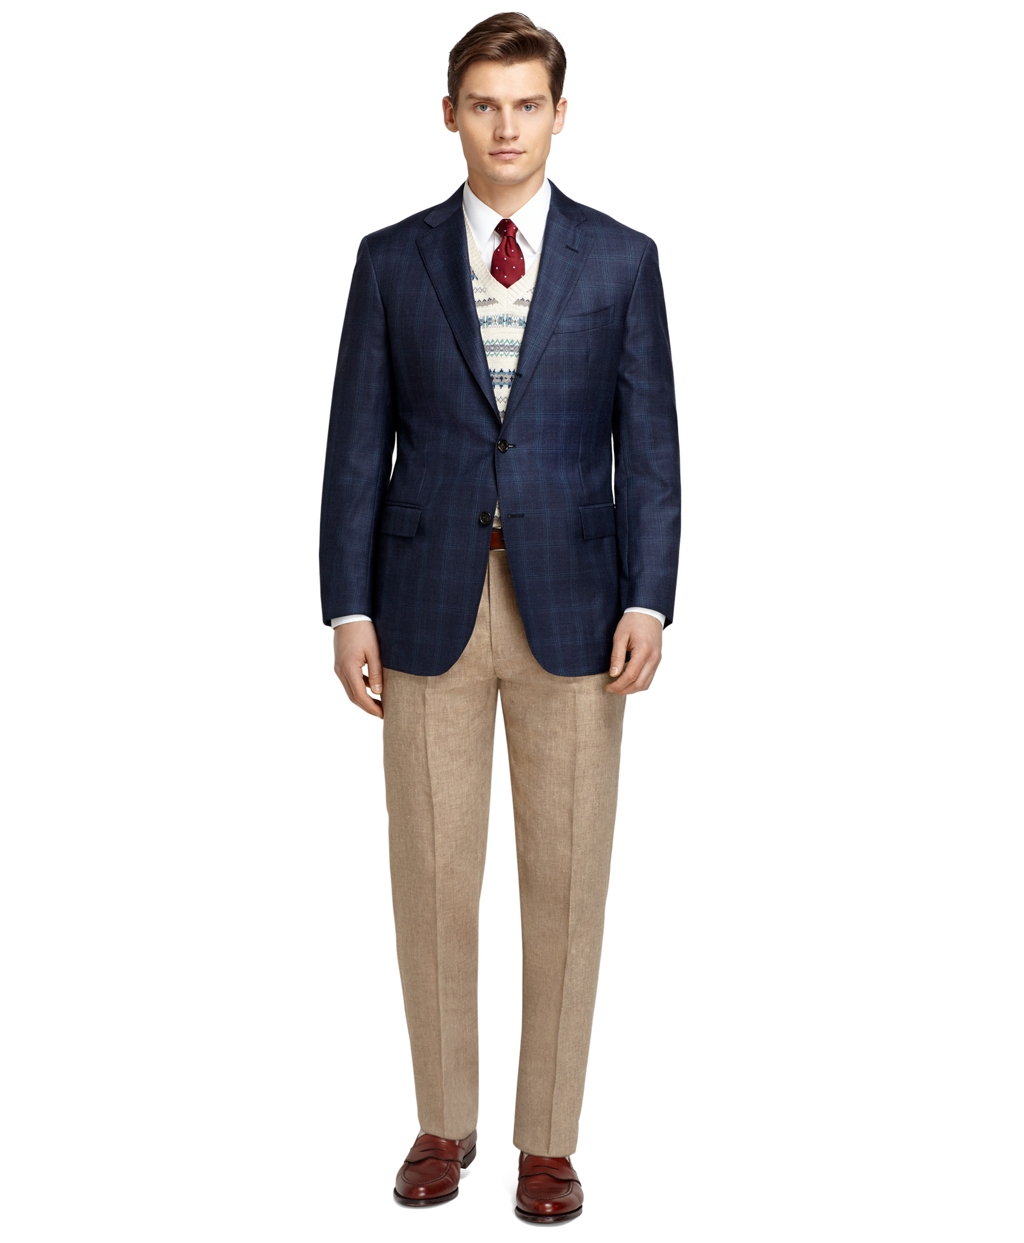 Brooks brothers Regent Fit Navy Plaid With Teal Windowpane Sport